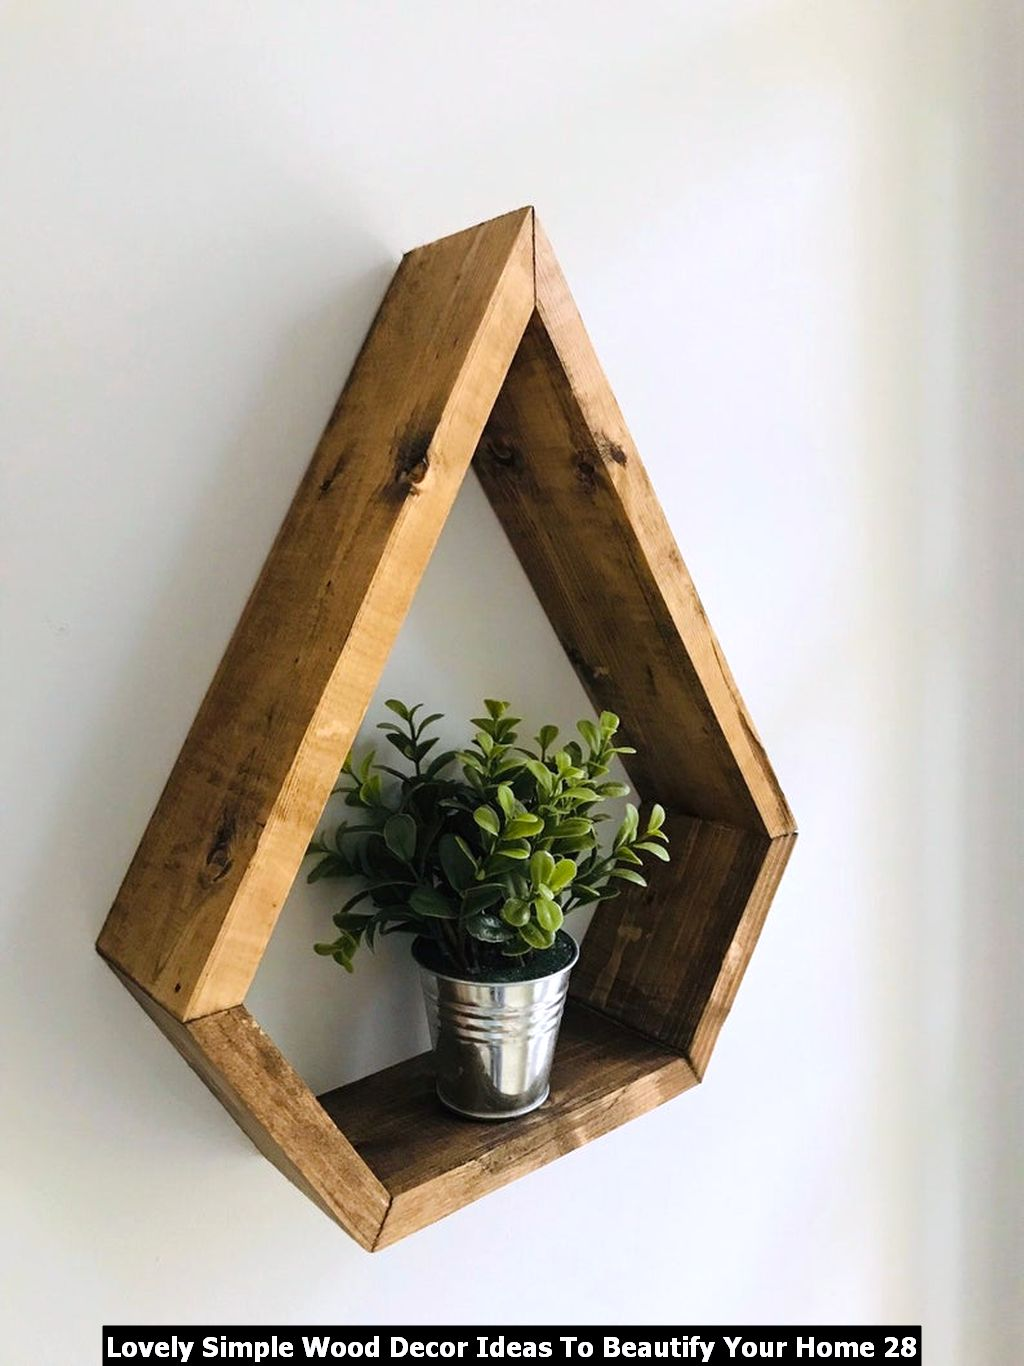 Lovely Simple Wood Decor Ideas To Beautify Your Home 28